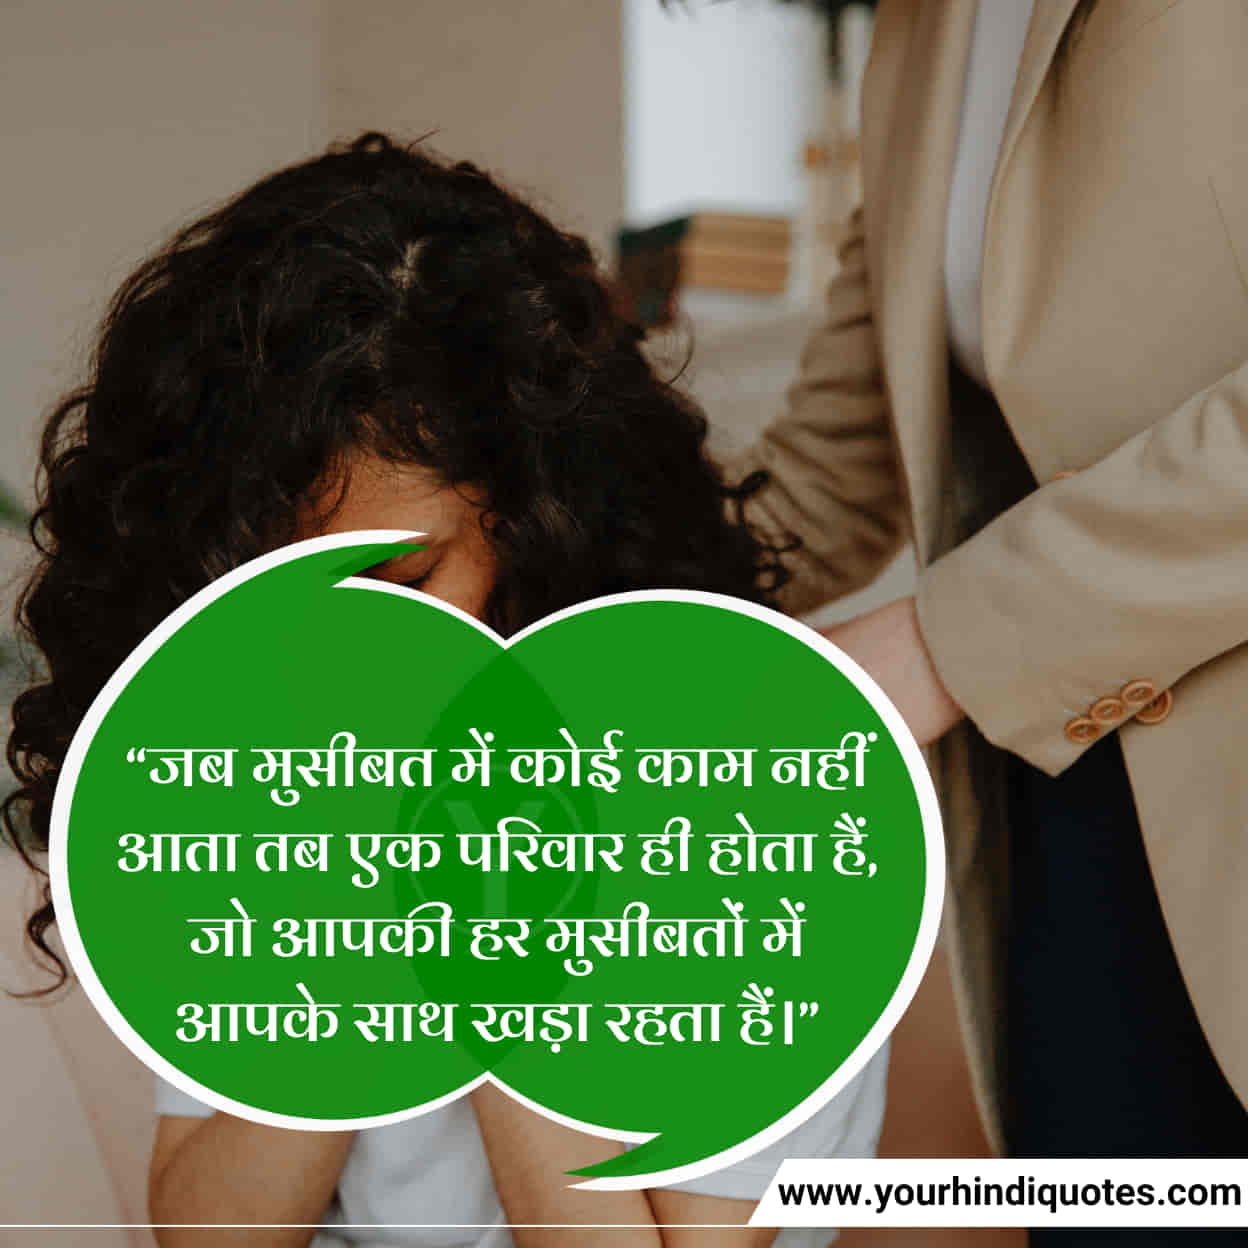 Best Hindi Family Quotes